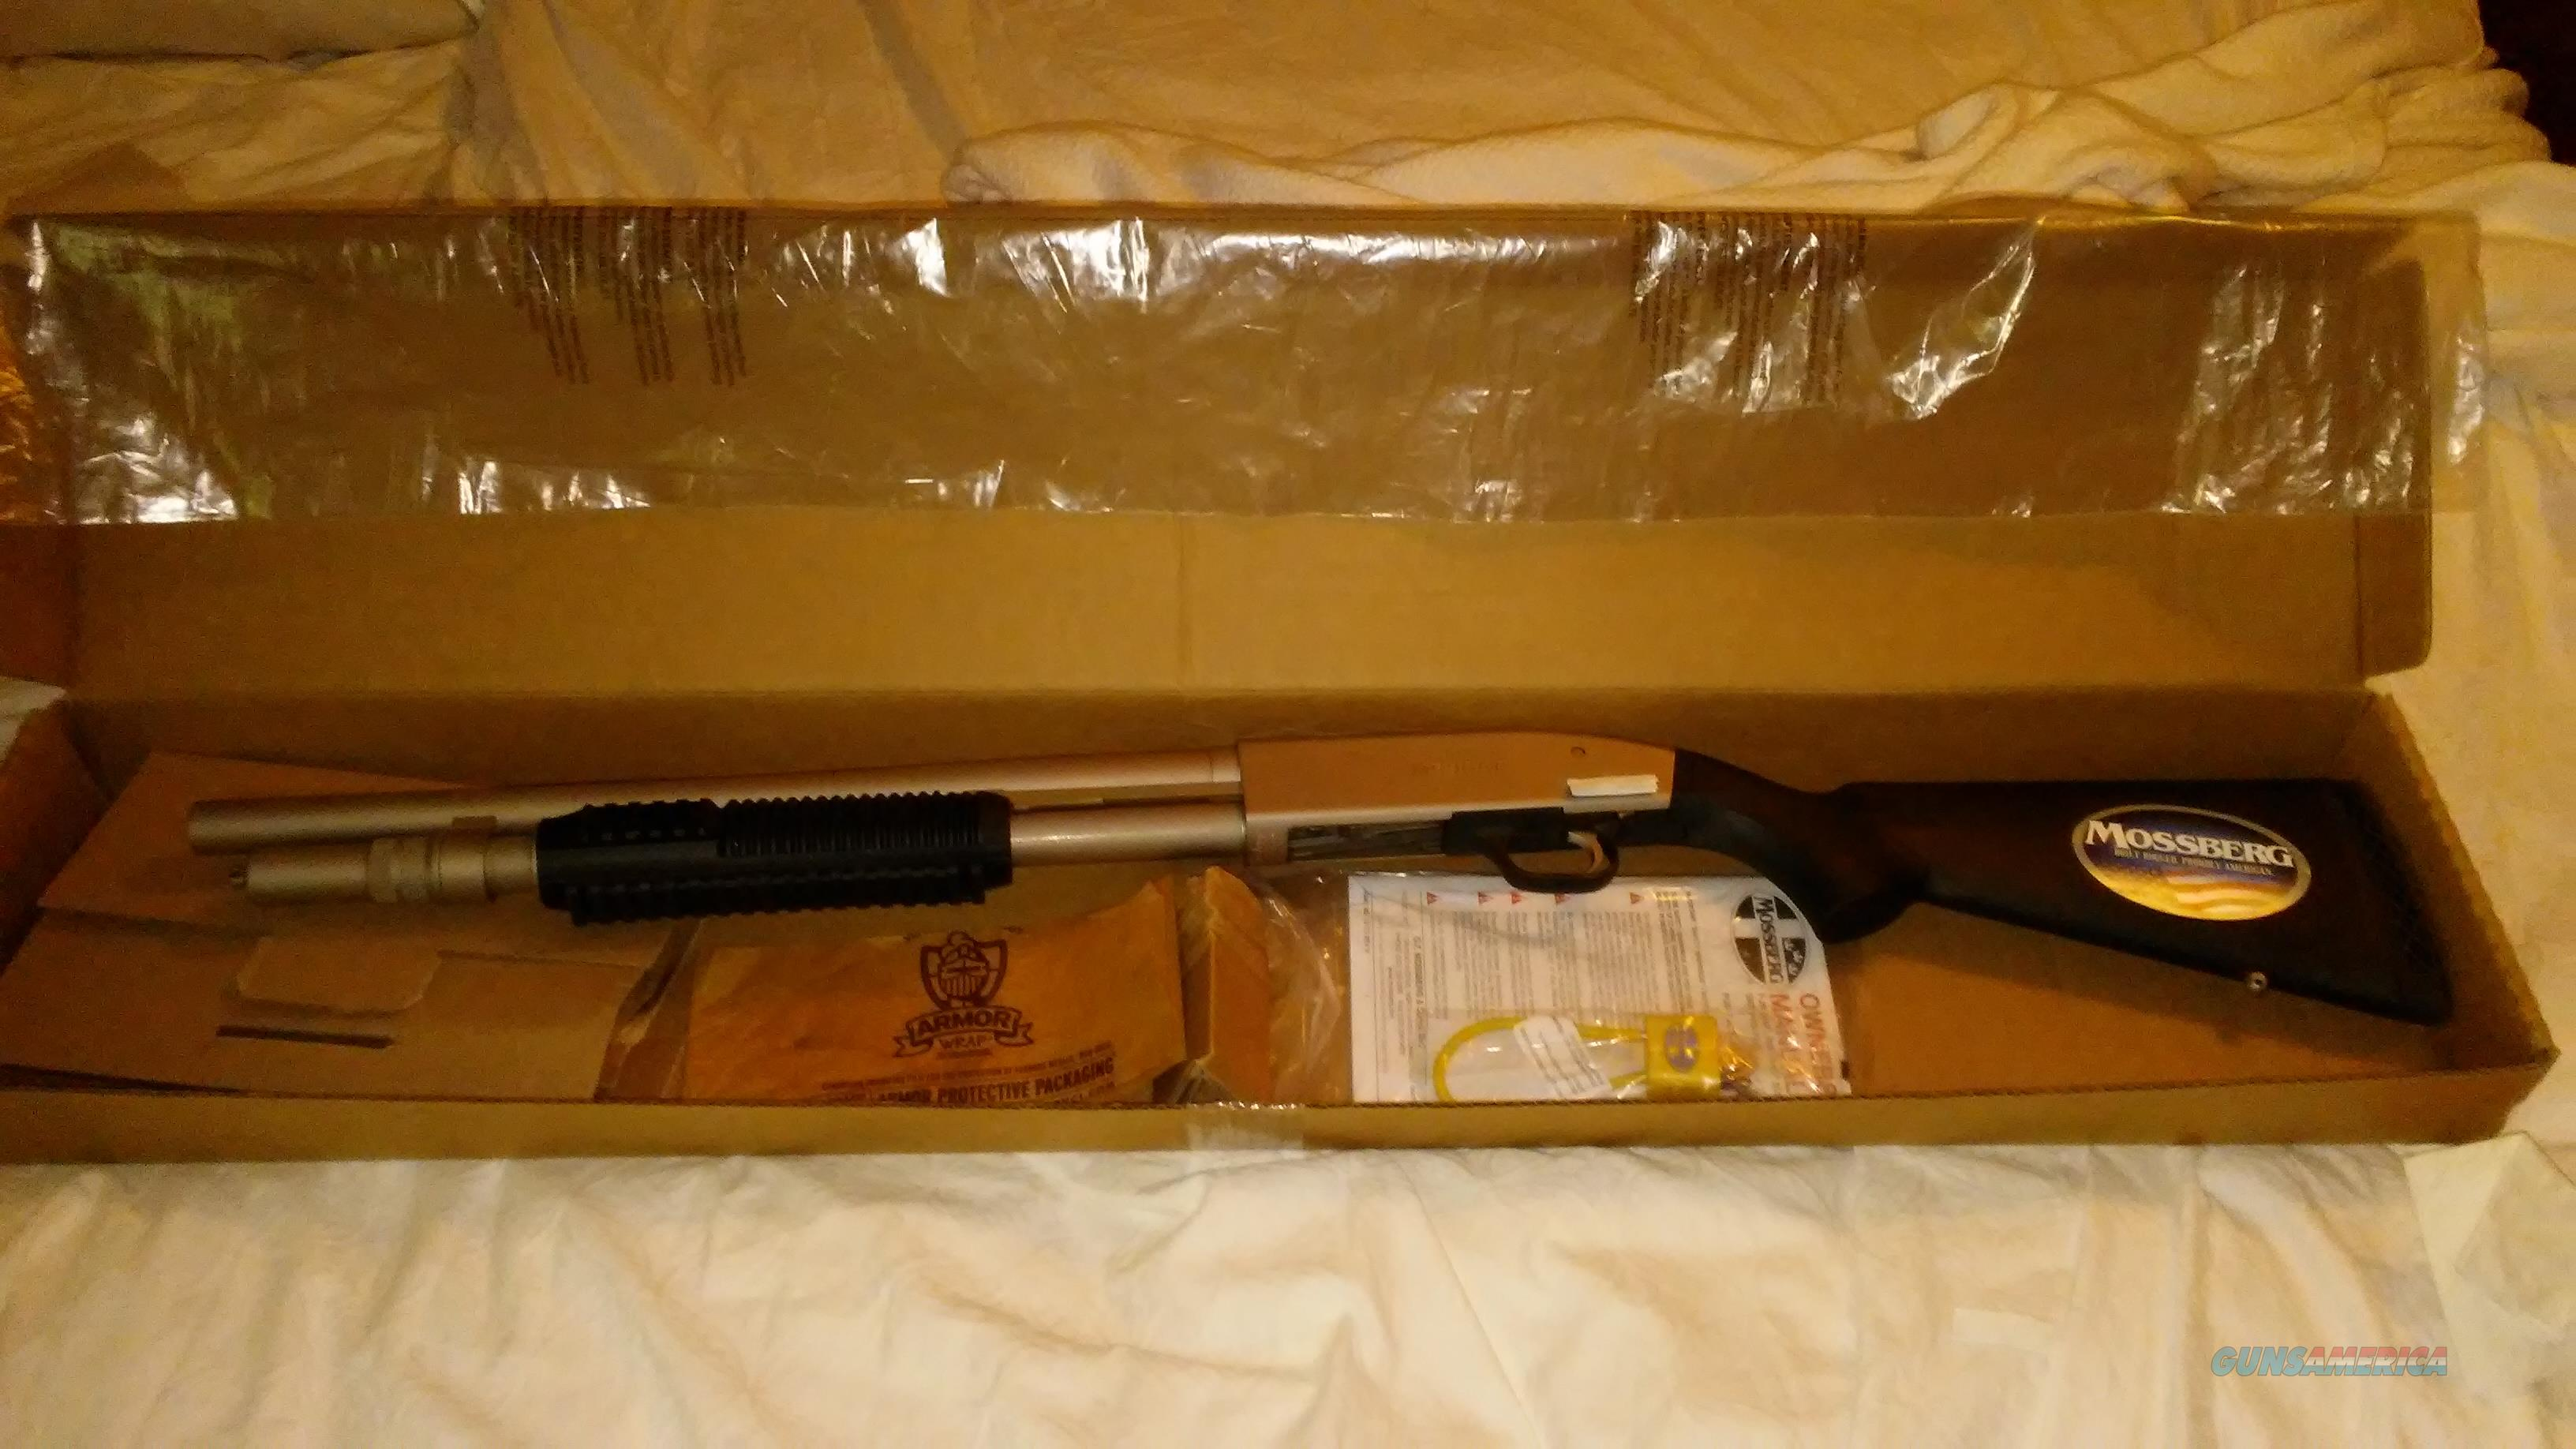 MOSSBERG 590A1 MARINER, MARINECOAT 12GA   Guns > Shotguns > Mossberg Shotguns > Pump > Tactical